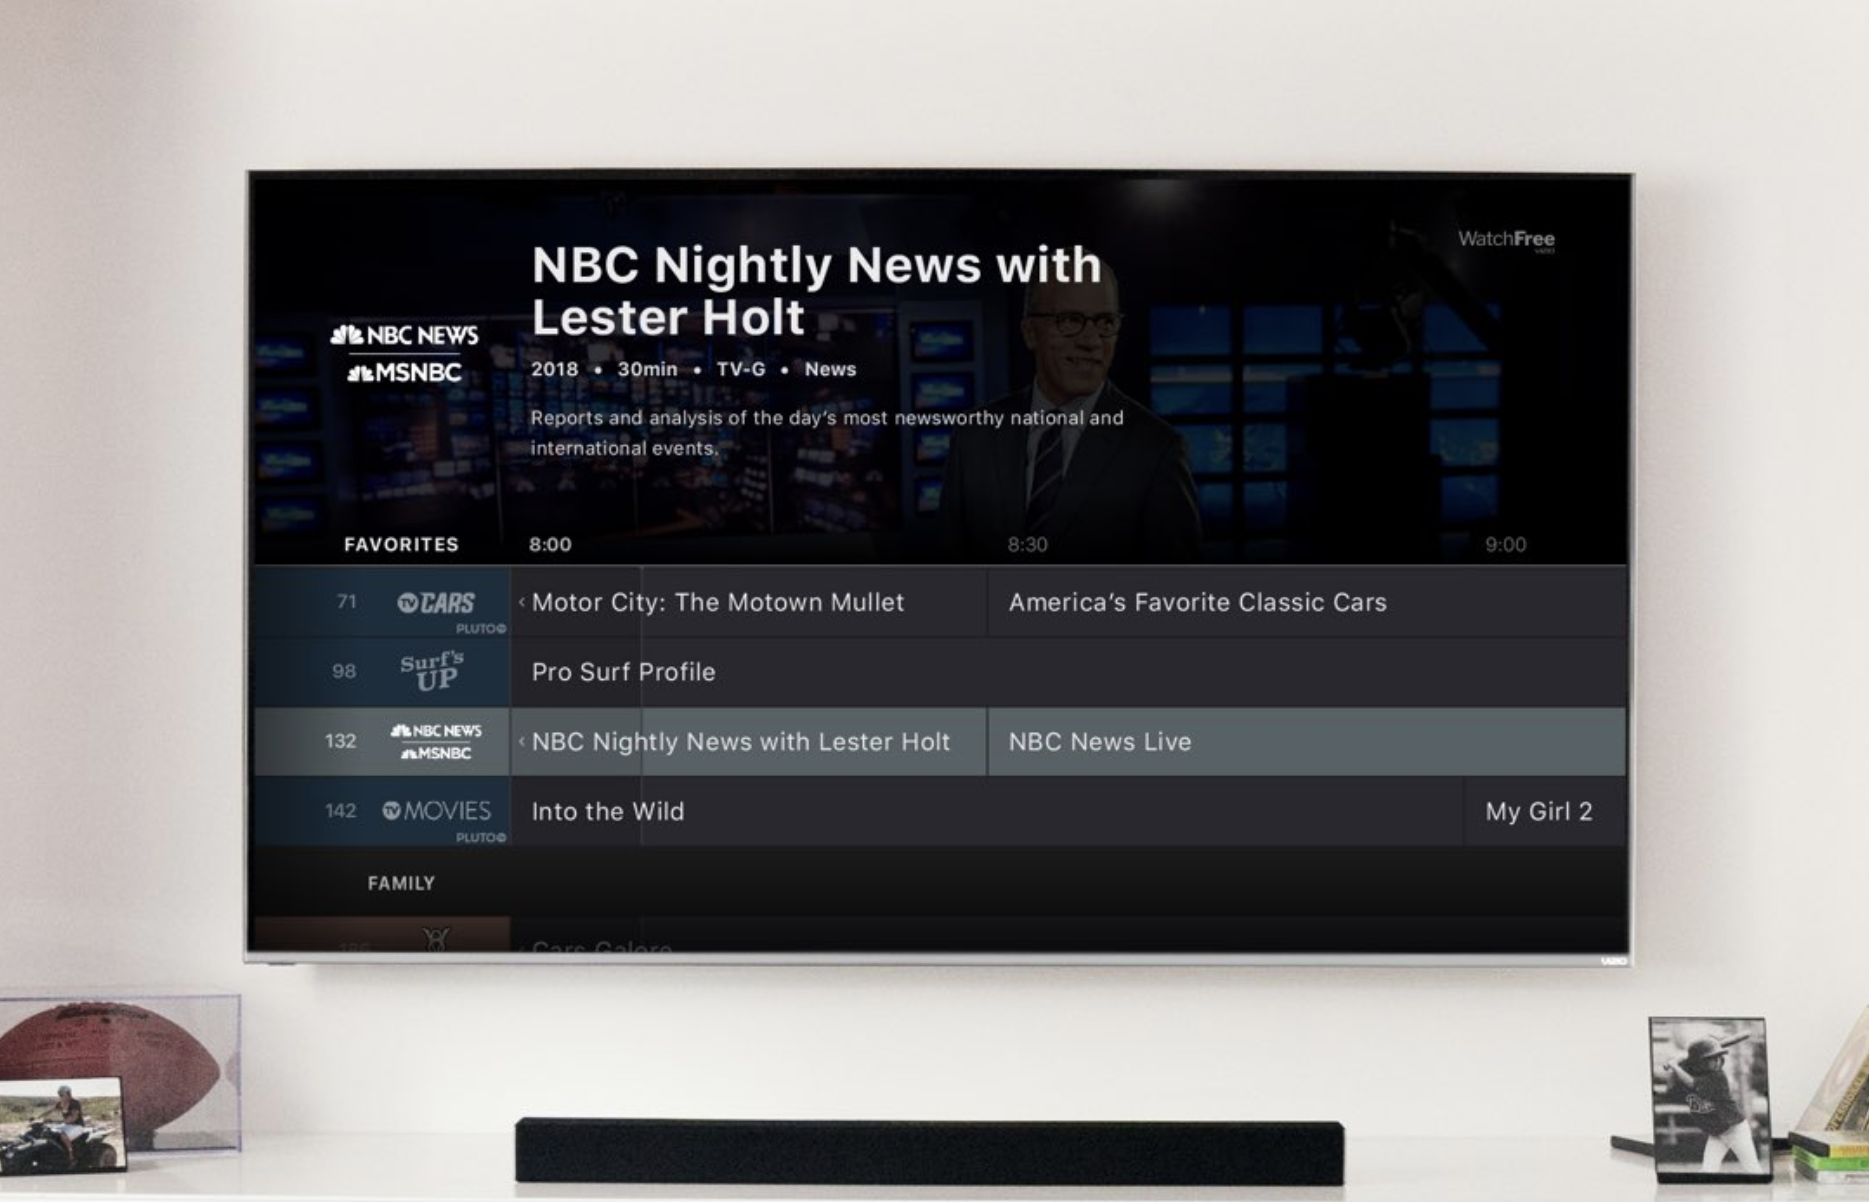 vizio launches its own streaming service powered by pluto tv rh techcrunch com DirecTV TV Guide Dish Network TV Guide